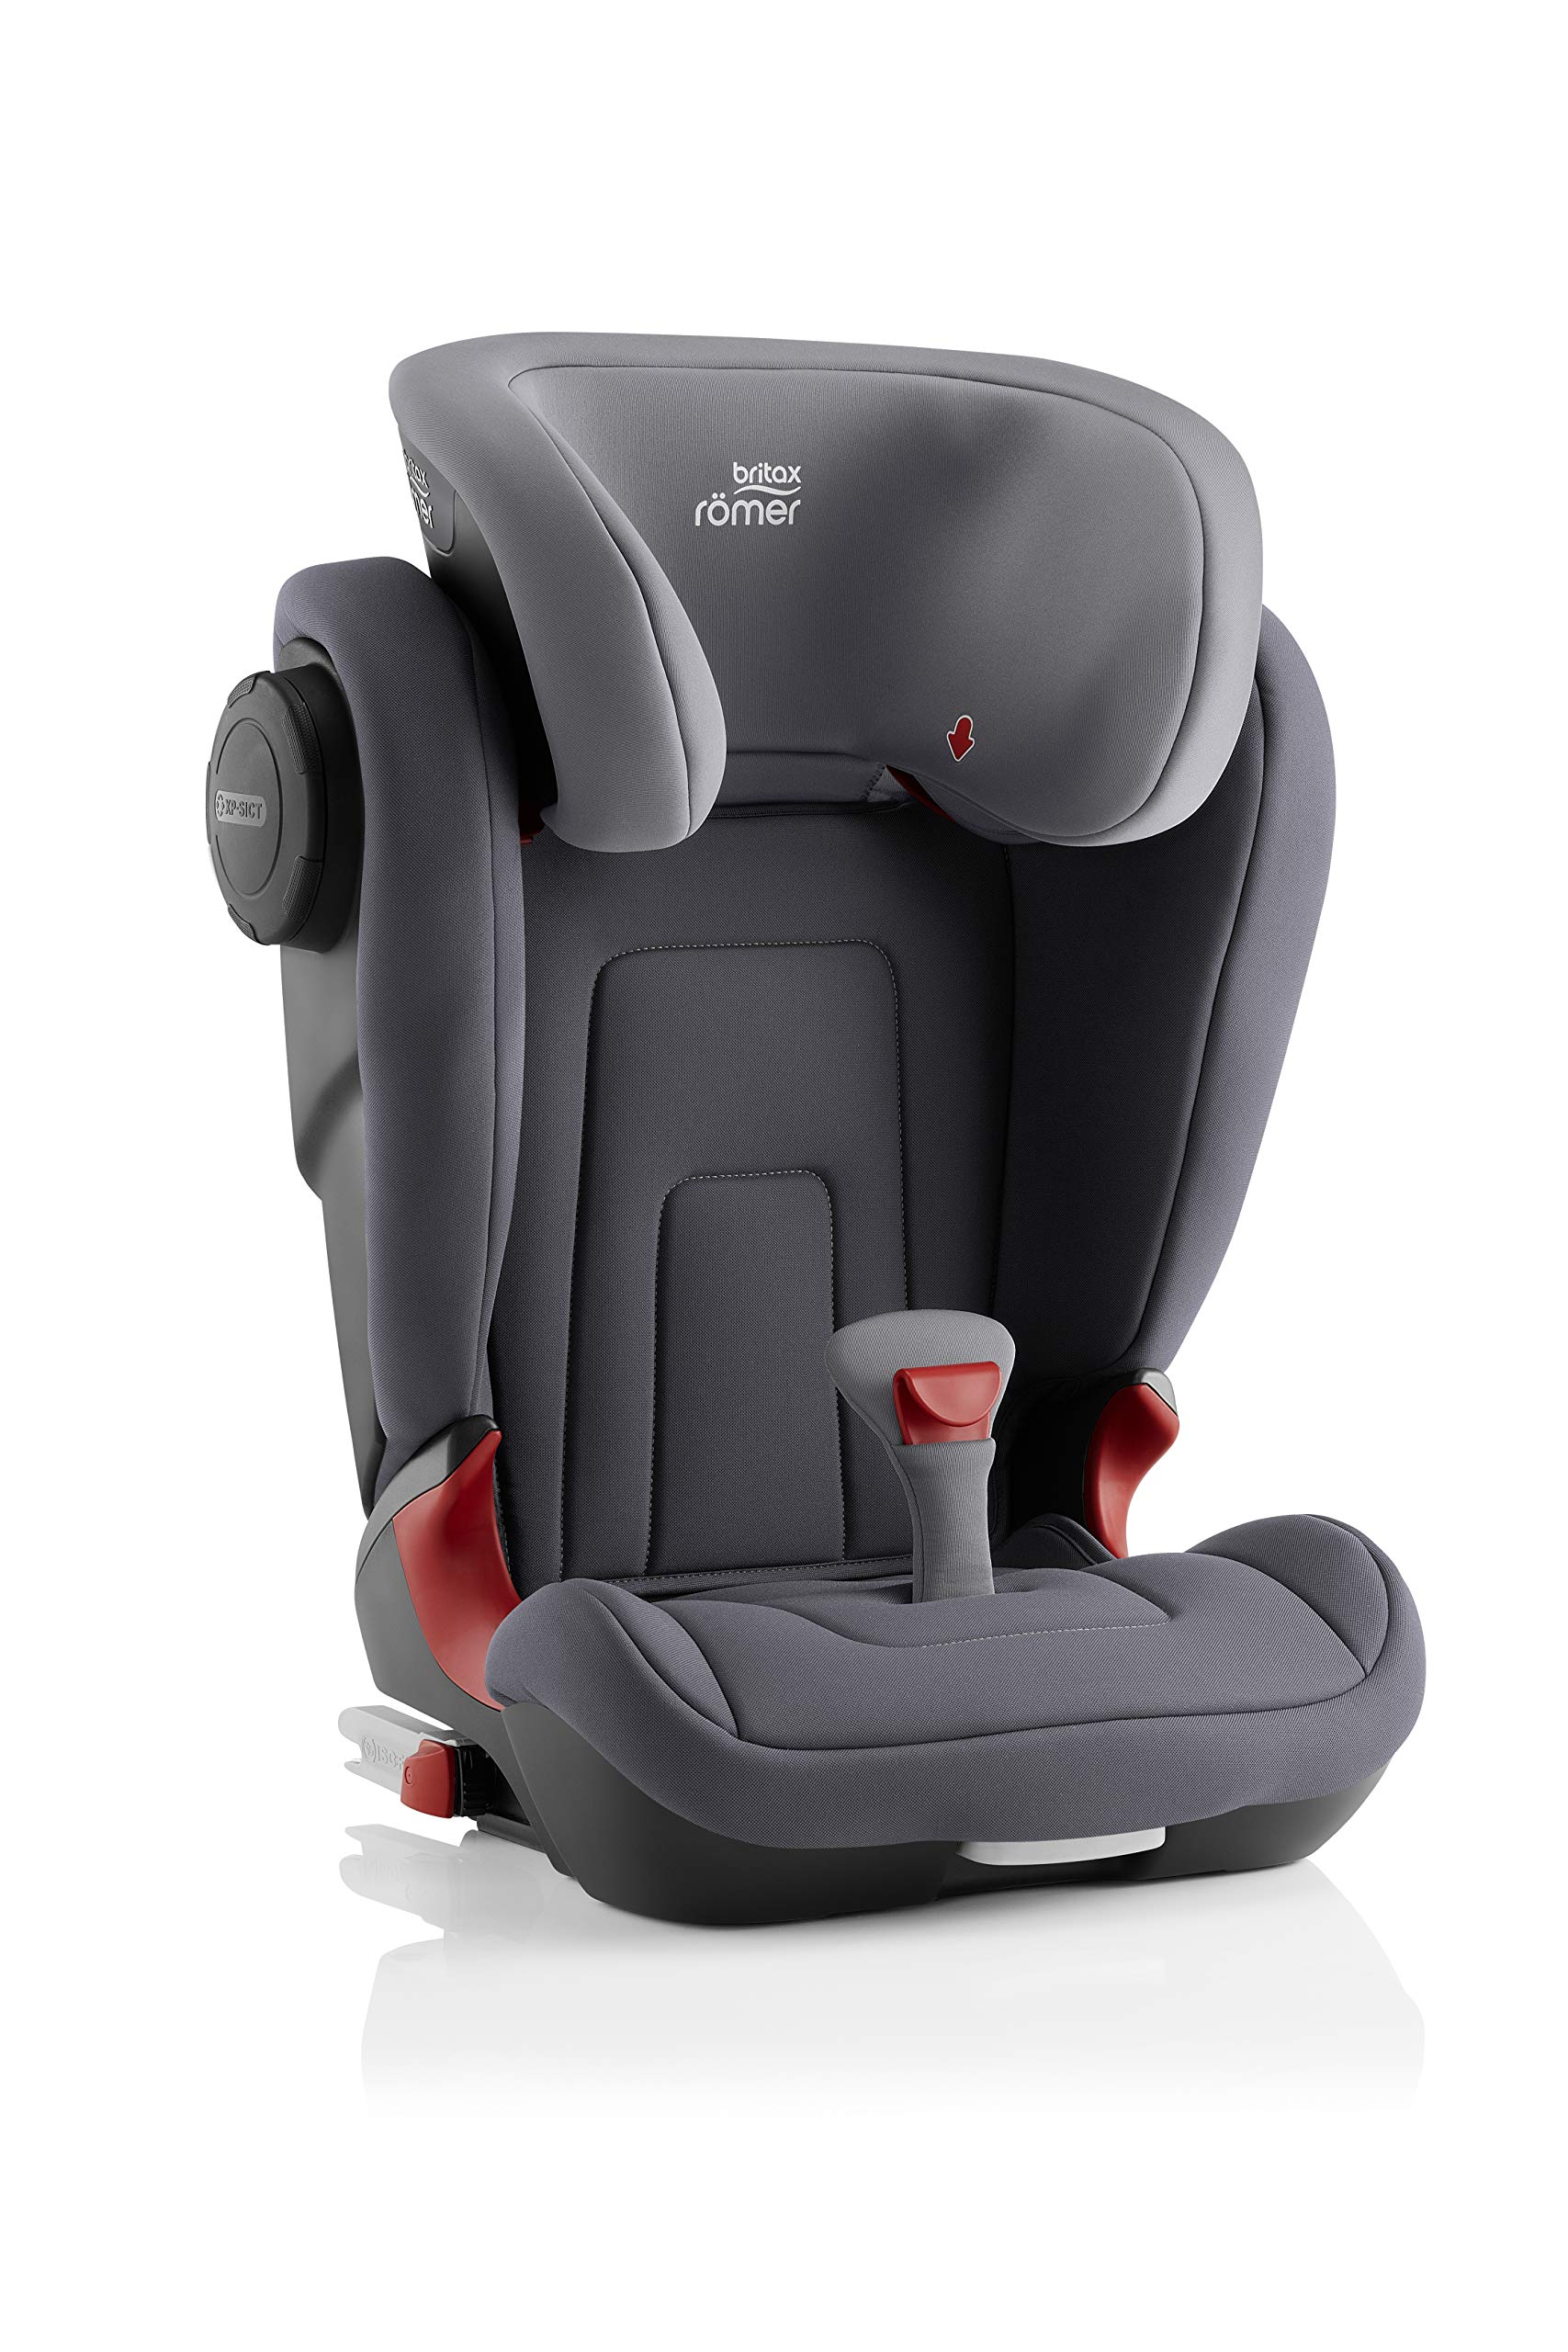 Britax Römer KIDFIX² S Group 2-3 (15-36kg) Car Seat - Storm Grey  Advanced side impact protection - sict offers superior protection to your child in the event of a side collision. reducing impact forces by minimising the distance between the car and the car seat. Secure guard - helps to protect your child's delicate abdominal area by adding an extra - a 4th - contact point to the 3-point seat belt. High back booster - protects your child in 3 ways: provides head to hip protection; belt guides provide correct positioning of the seat belt and the padded headrest provides safety and comfort. 3